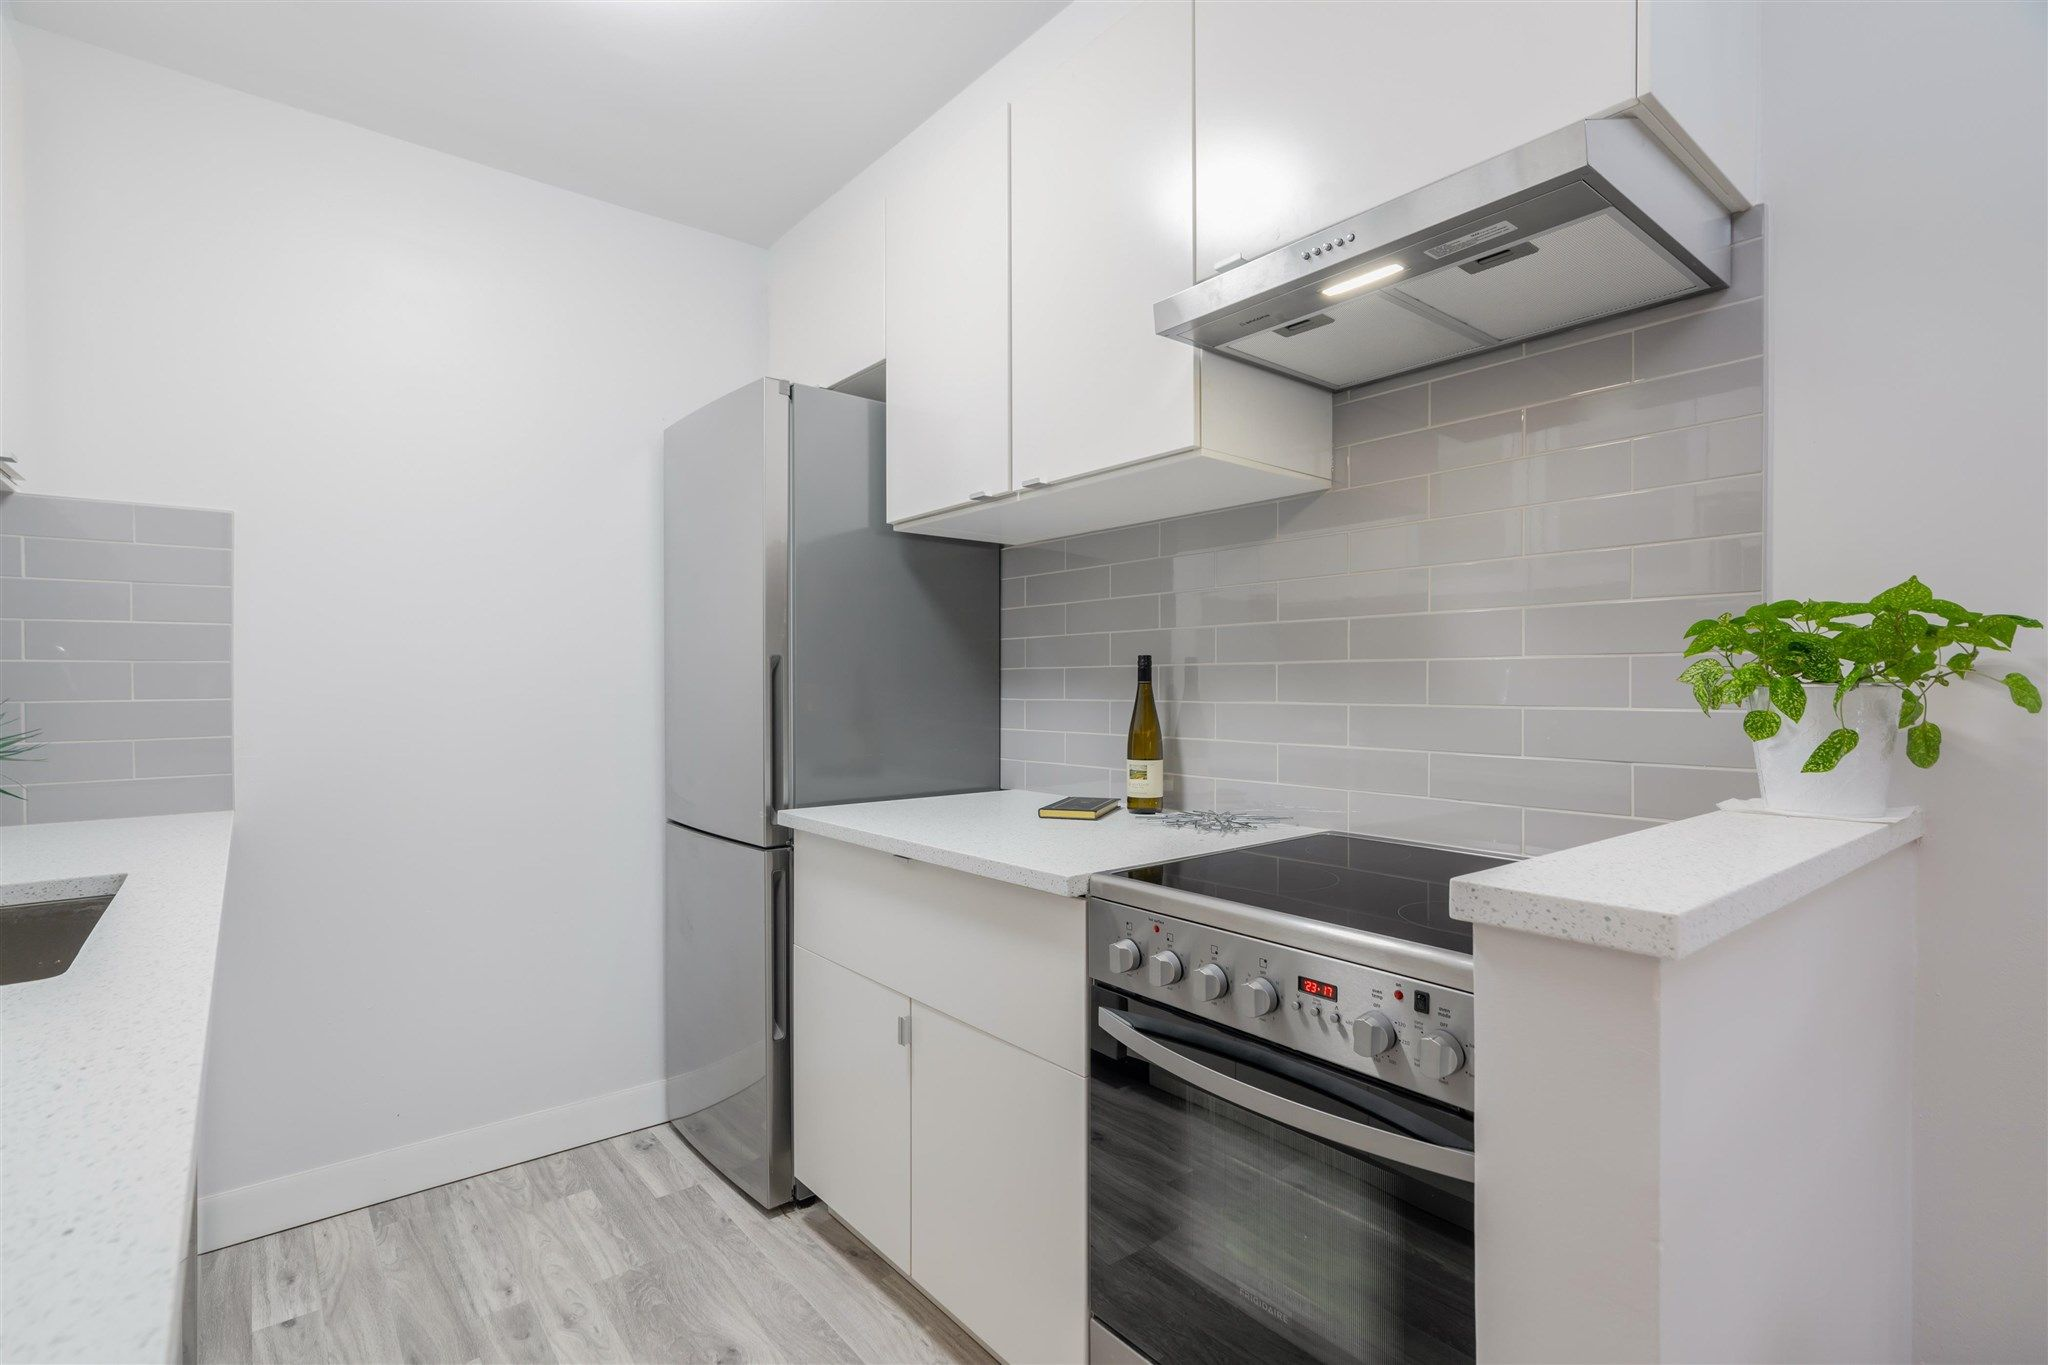 """Main Photo: 149 200 WESTHILL Place in Port Moody: College Park PM Condo for sale in """"WESTHILL PLACE"""" : MLS®# R2608316"""